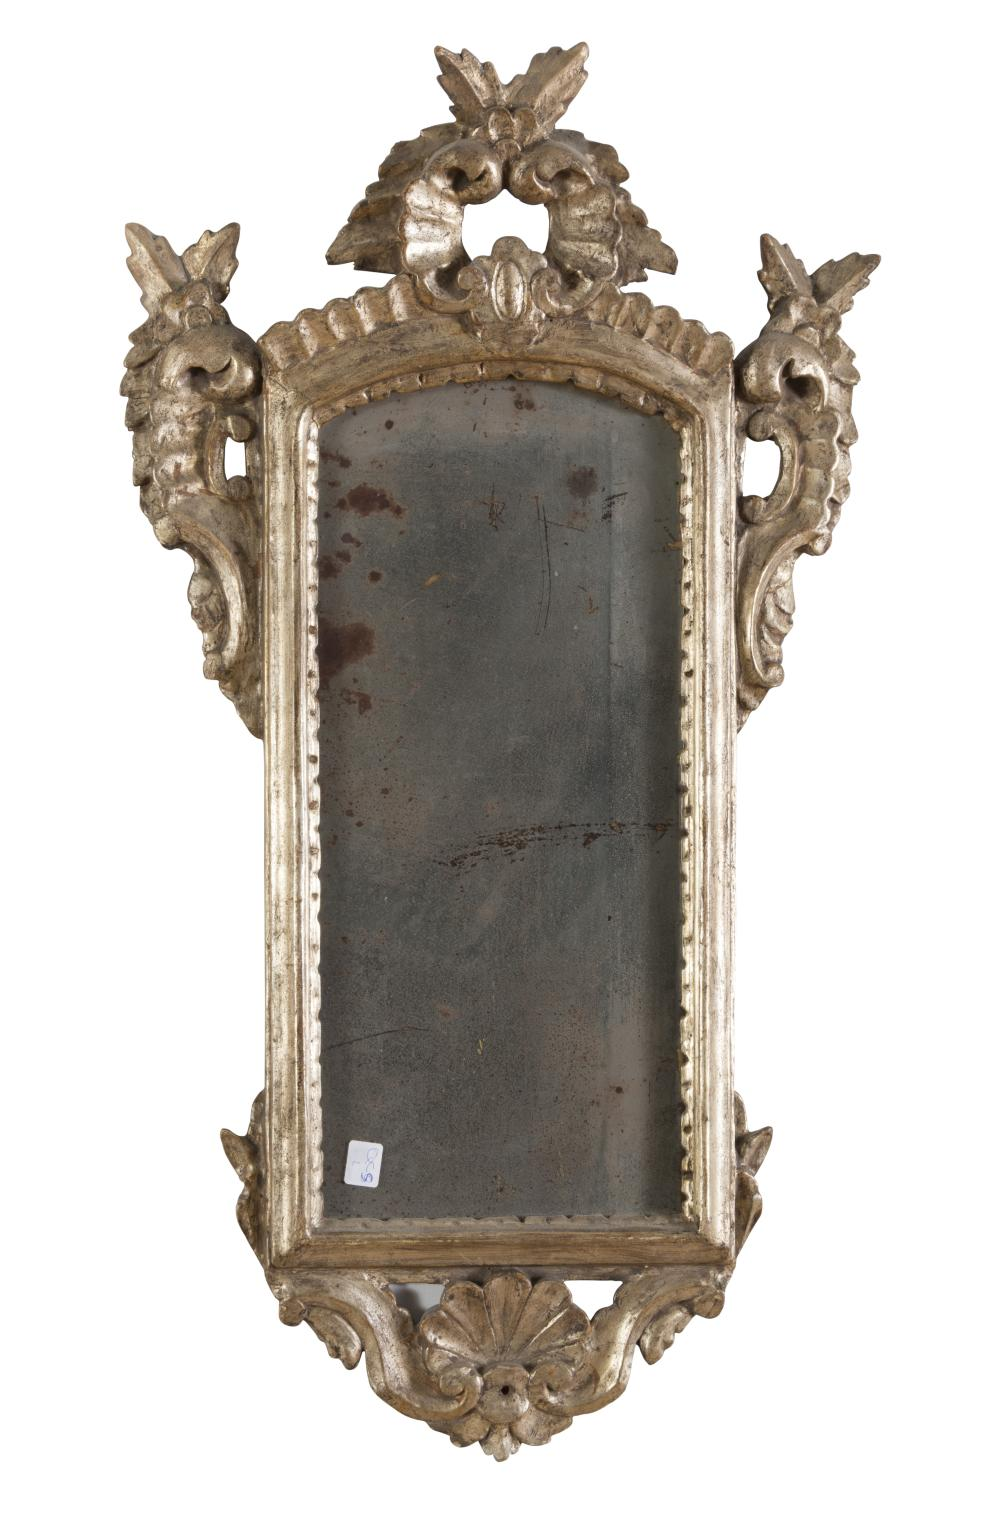 SMALL MIRROR IN SILVER-PLATED WOOD, VENETO 19TH CENTURY